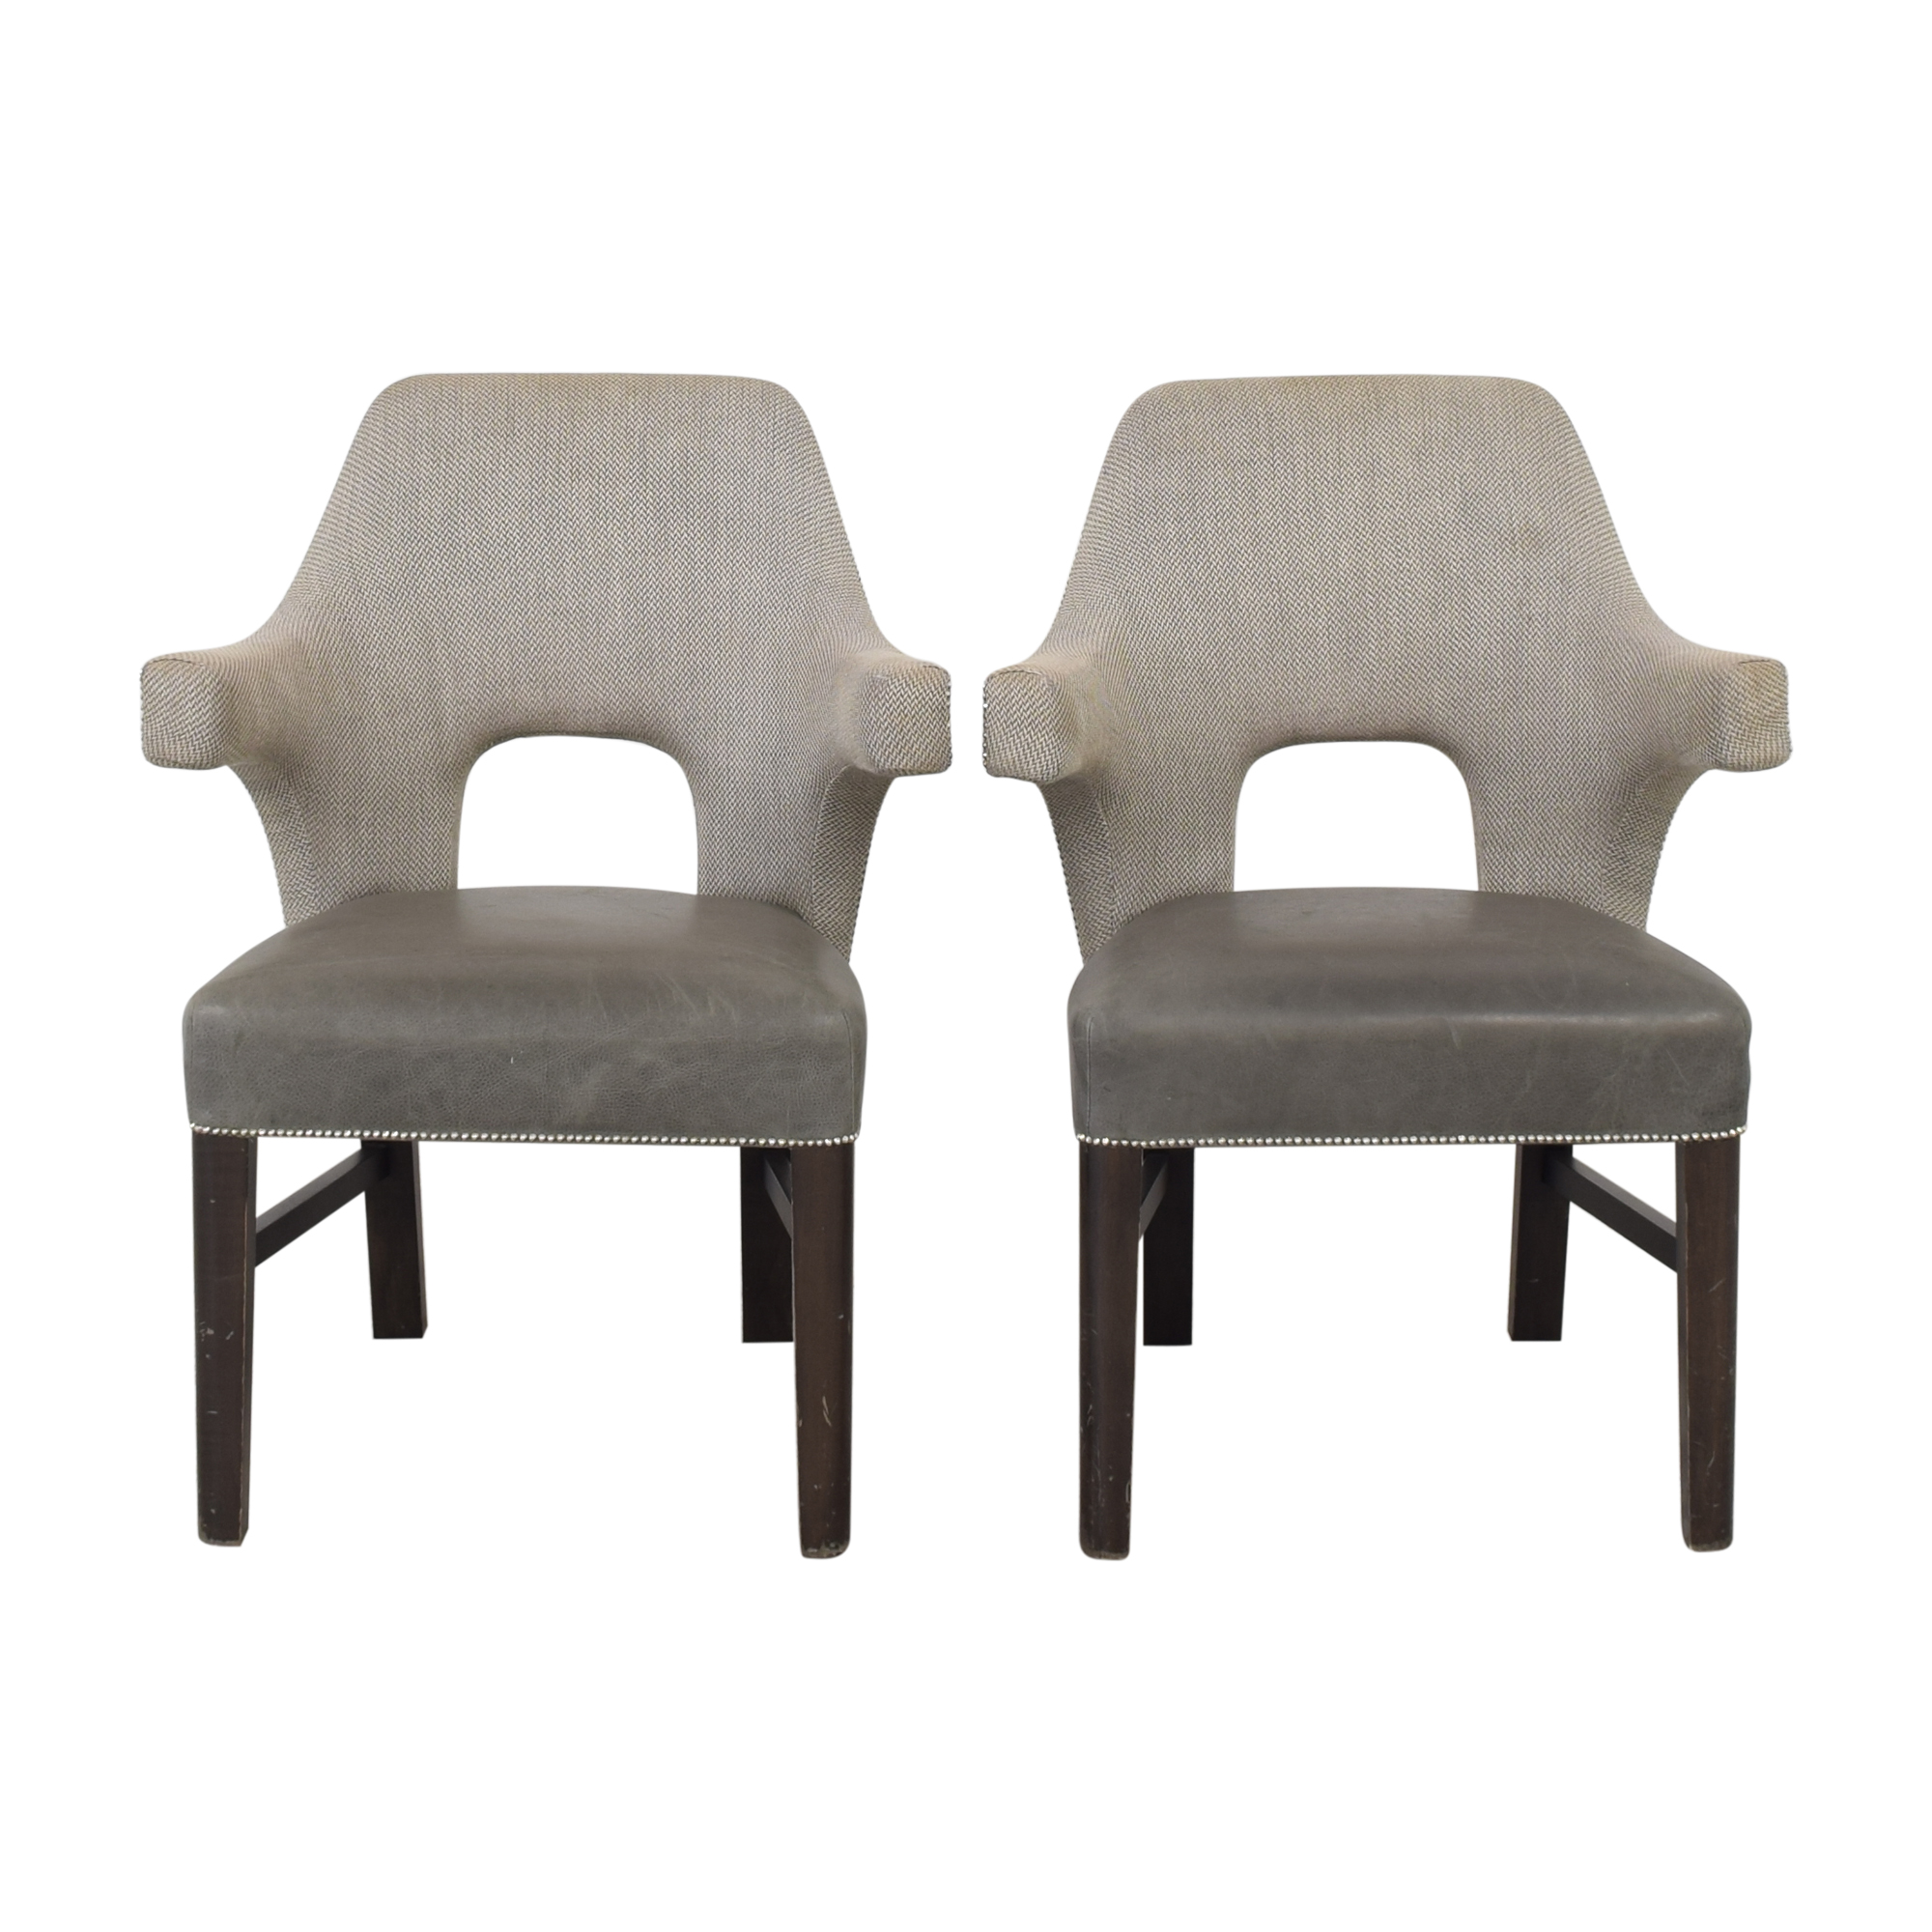 Thom Filicia Modern Dining Chairs / Dining Chairs